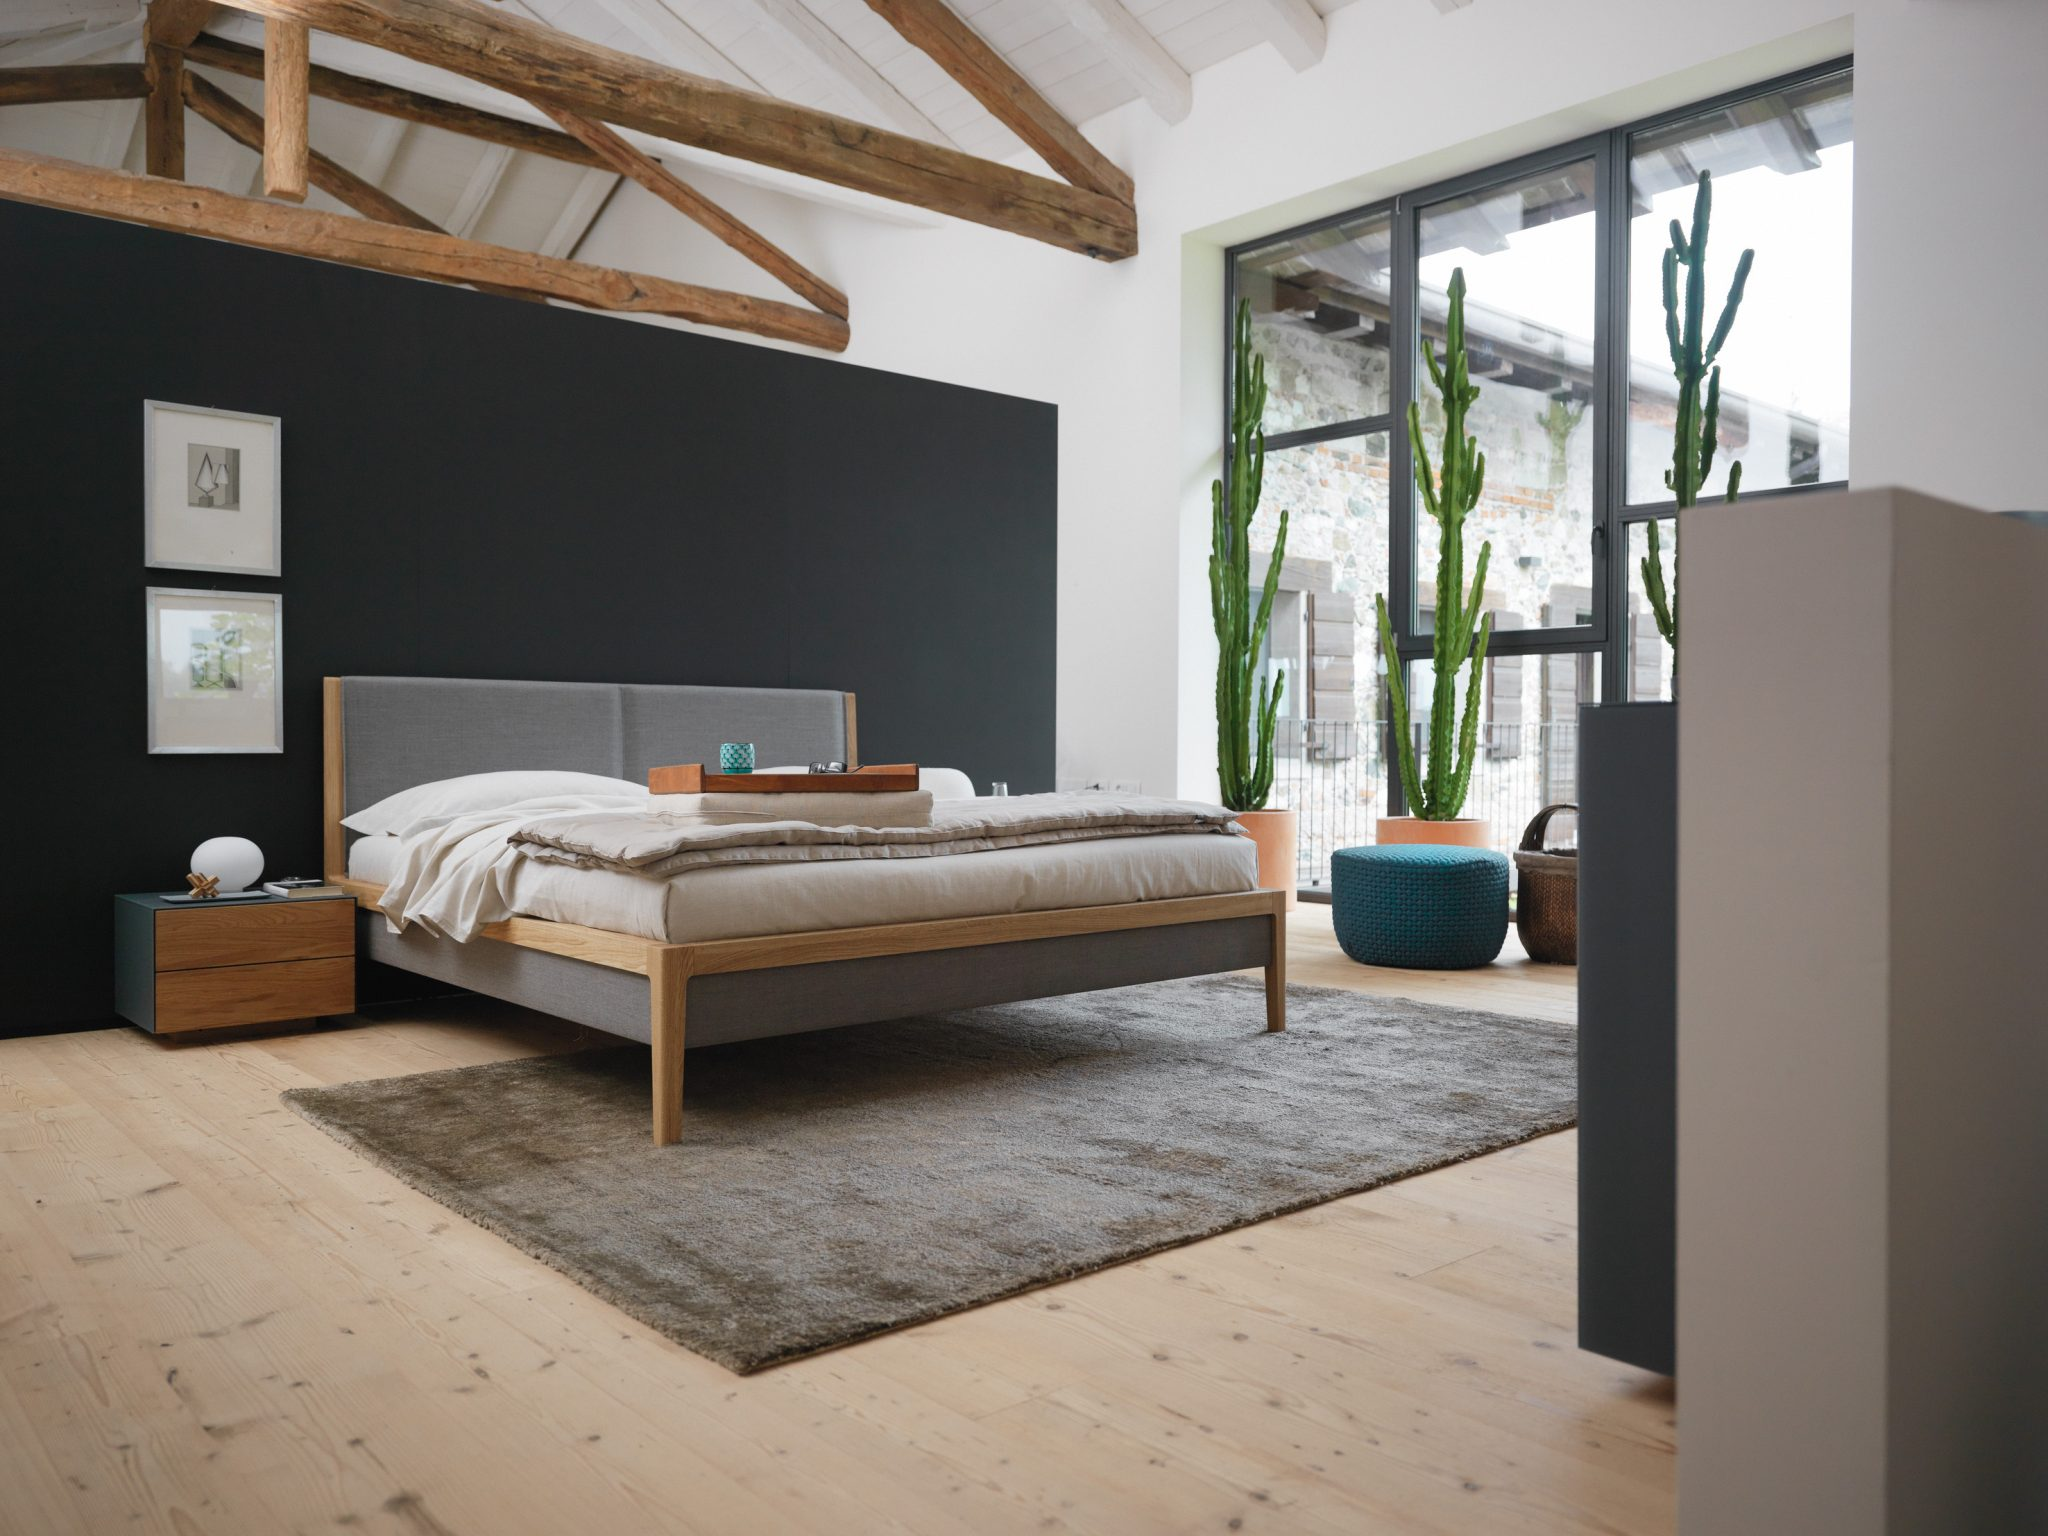 vollholz schlafzimmer von team 7 wien. Black Bedroom Furniture Sets. Home Design Ideas